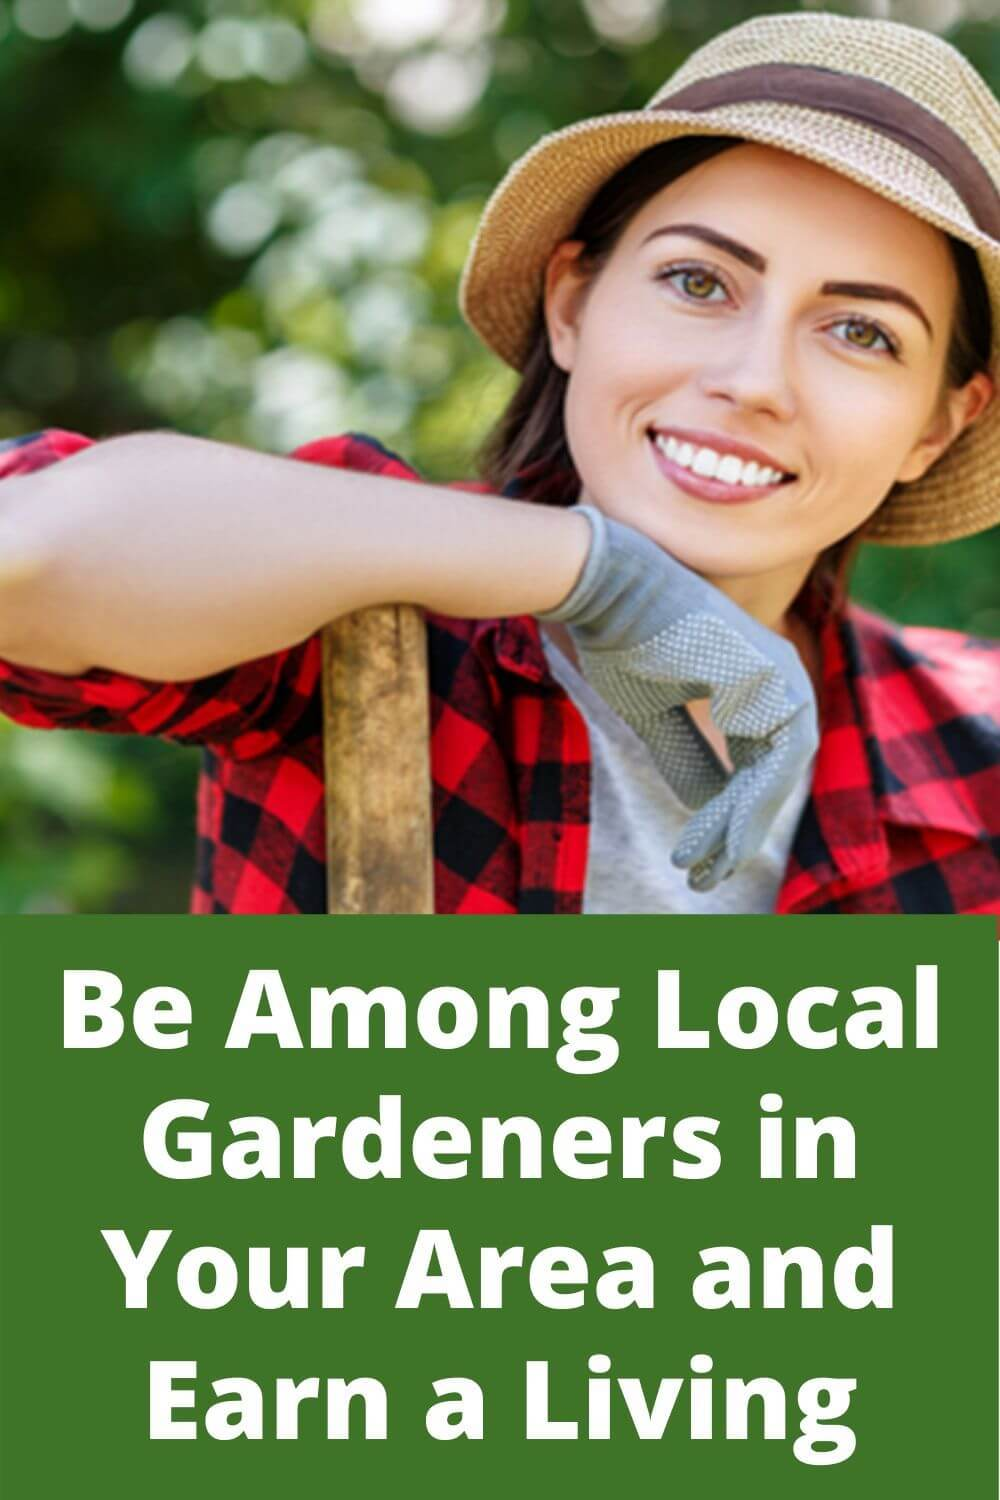 Be among local gardeners in your area and earn a living